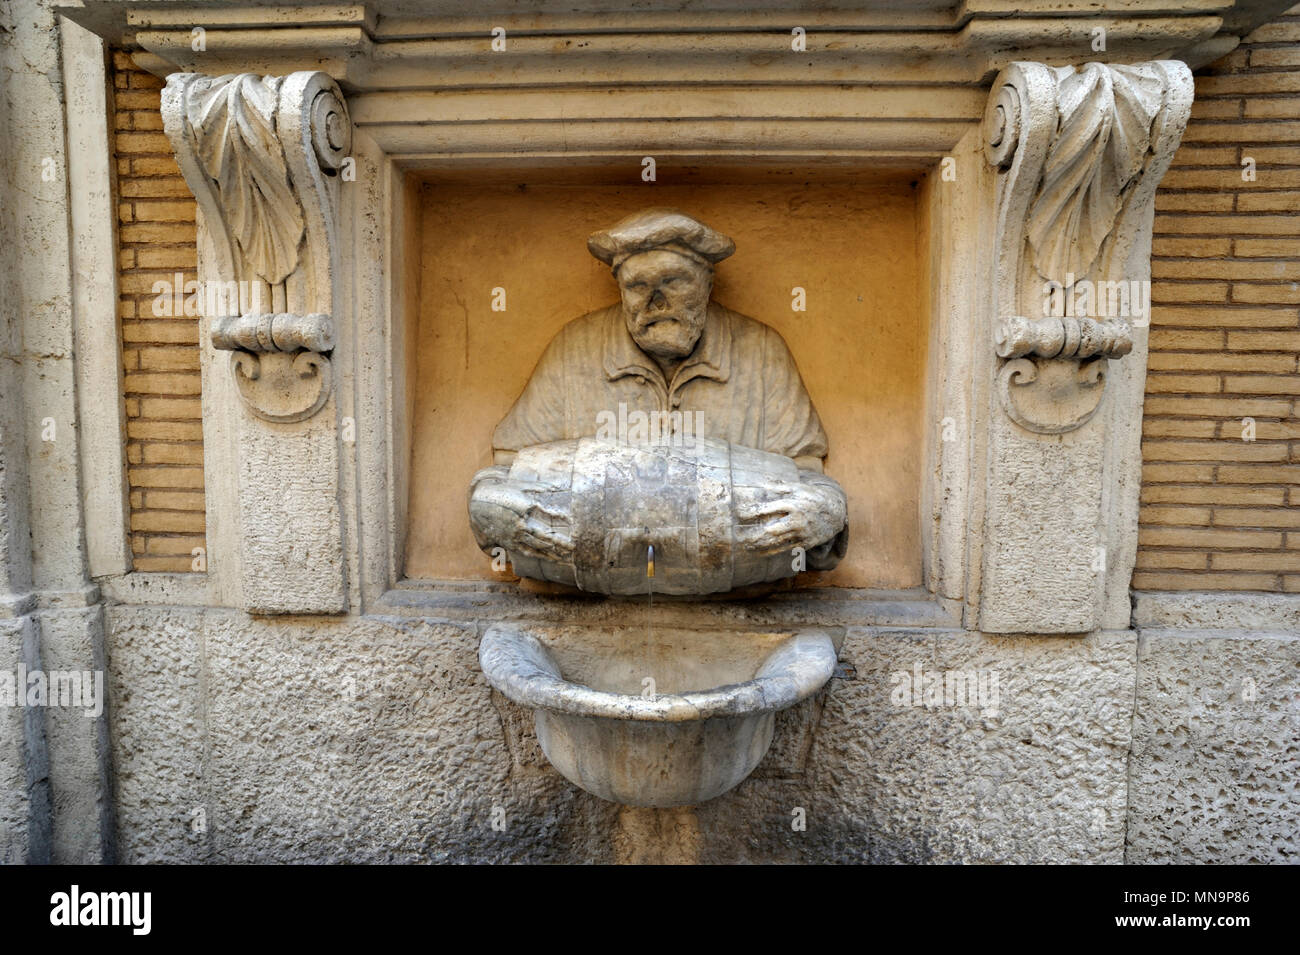 italy, rome, fontanella del facchino, porter's fountain, one of the talking statues in rome (AD 1580) - Stock Image